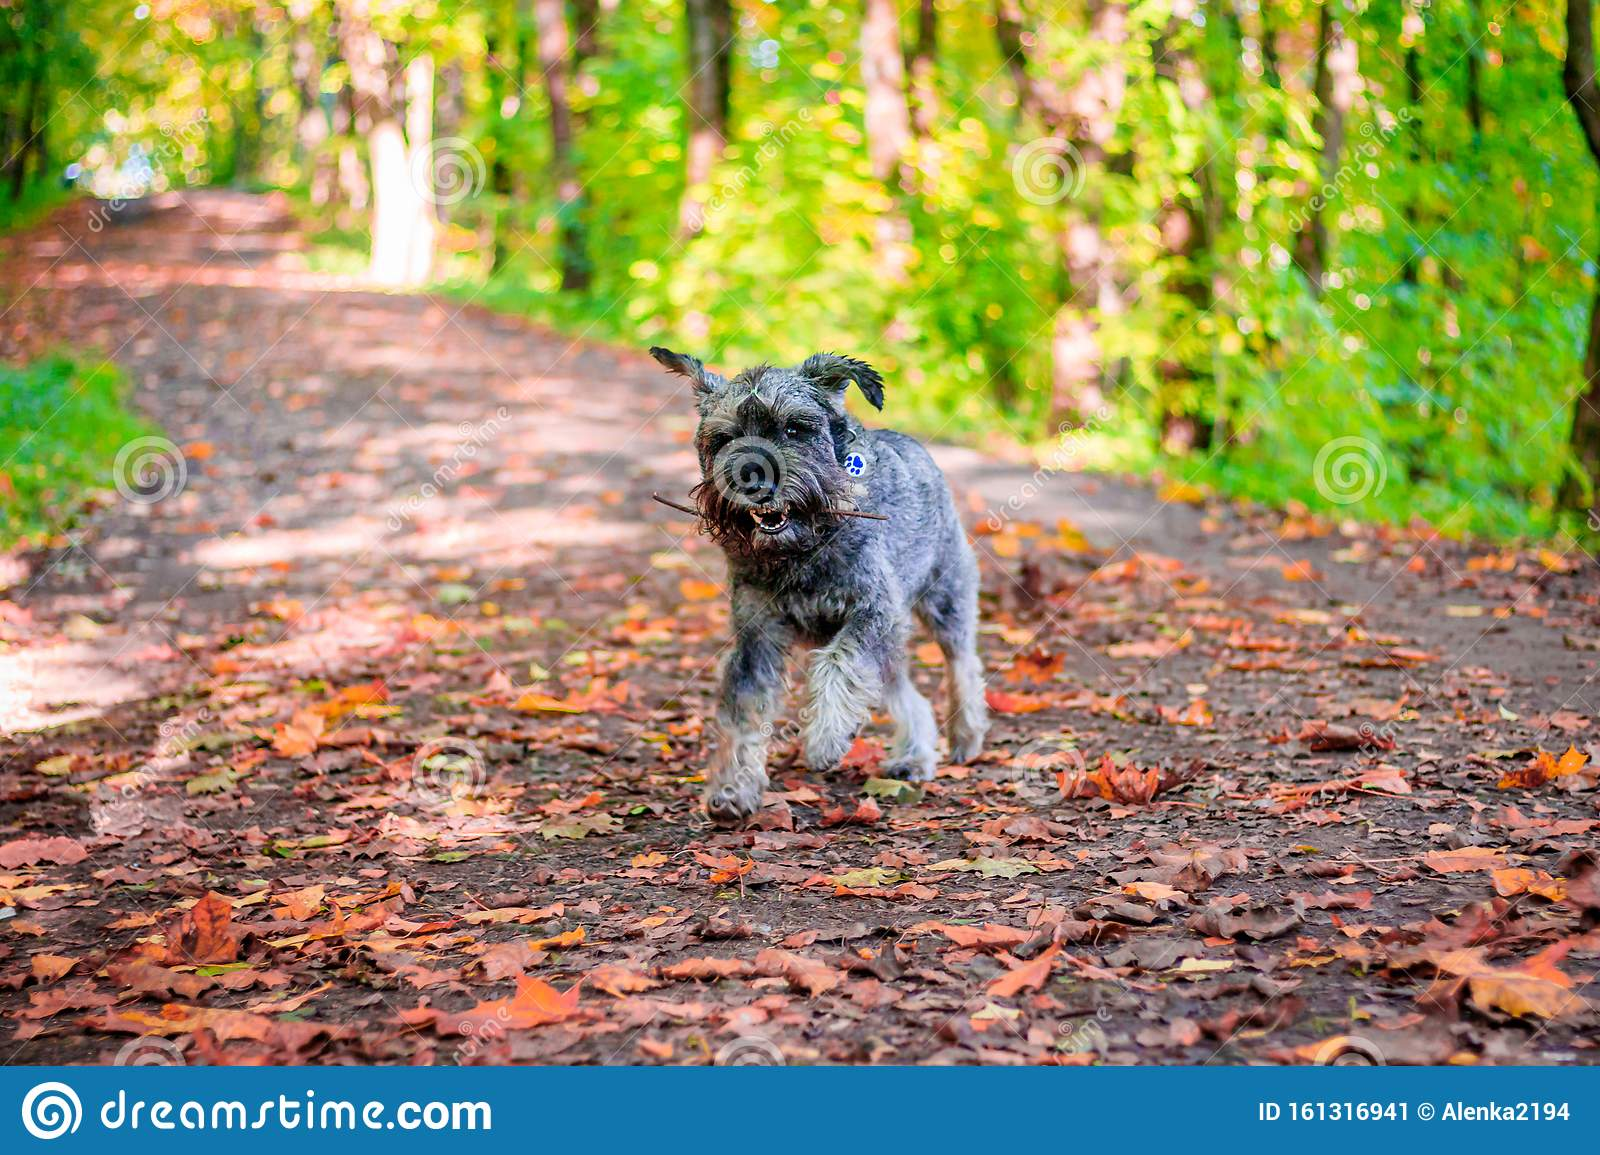 Miniature Schnauzer Dog For A Walk In The Autumn Park Dog With A Haircut For A Walk Dog On A Walk Stock Image Image Of Mountain Landscape 161316941